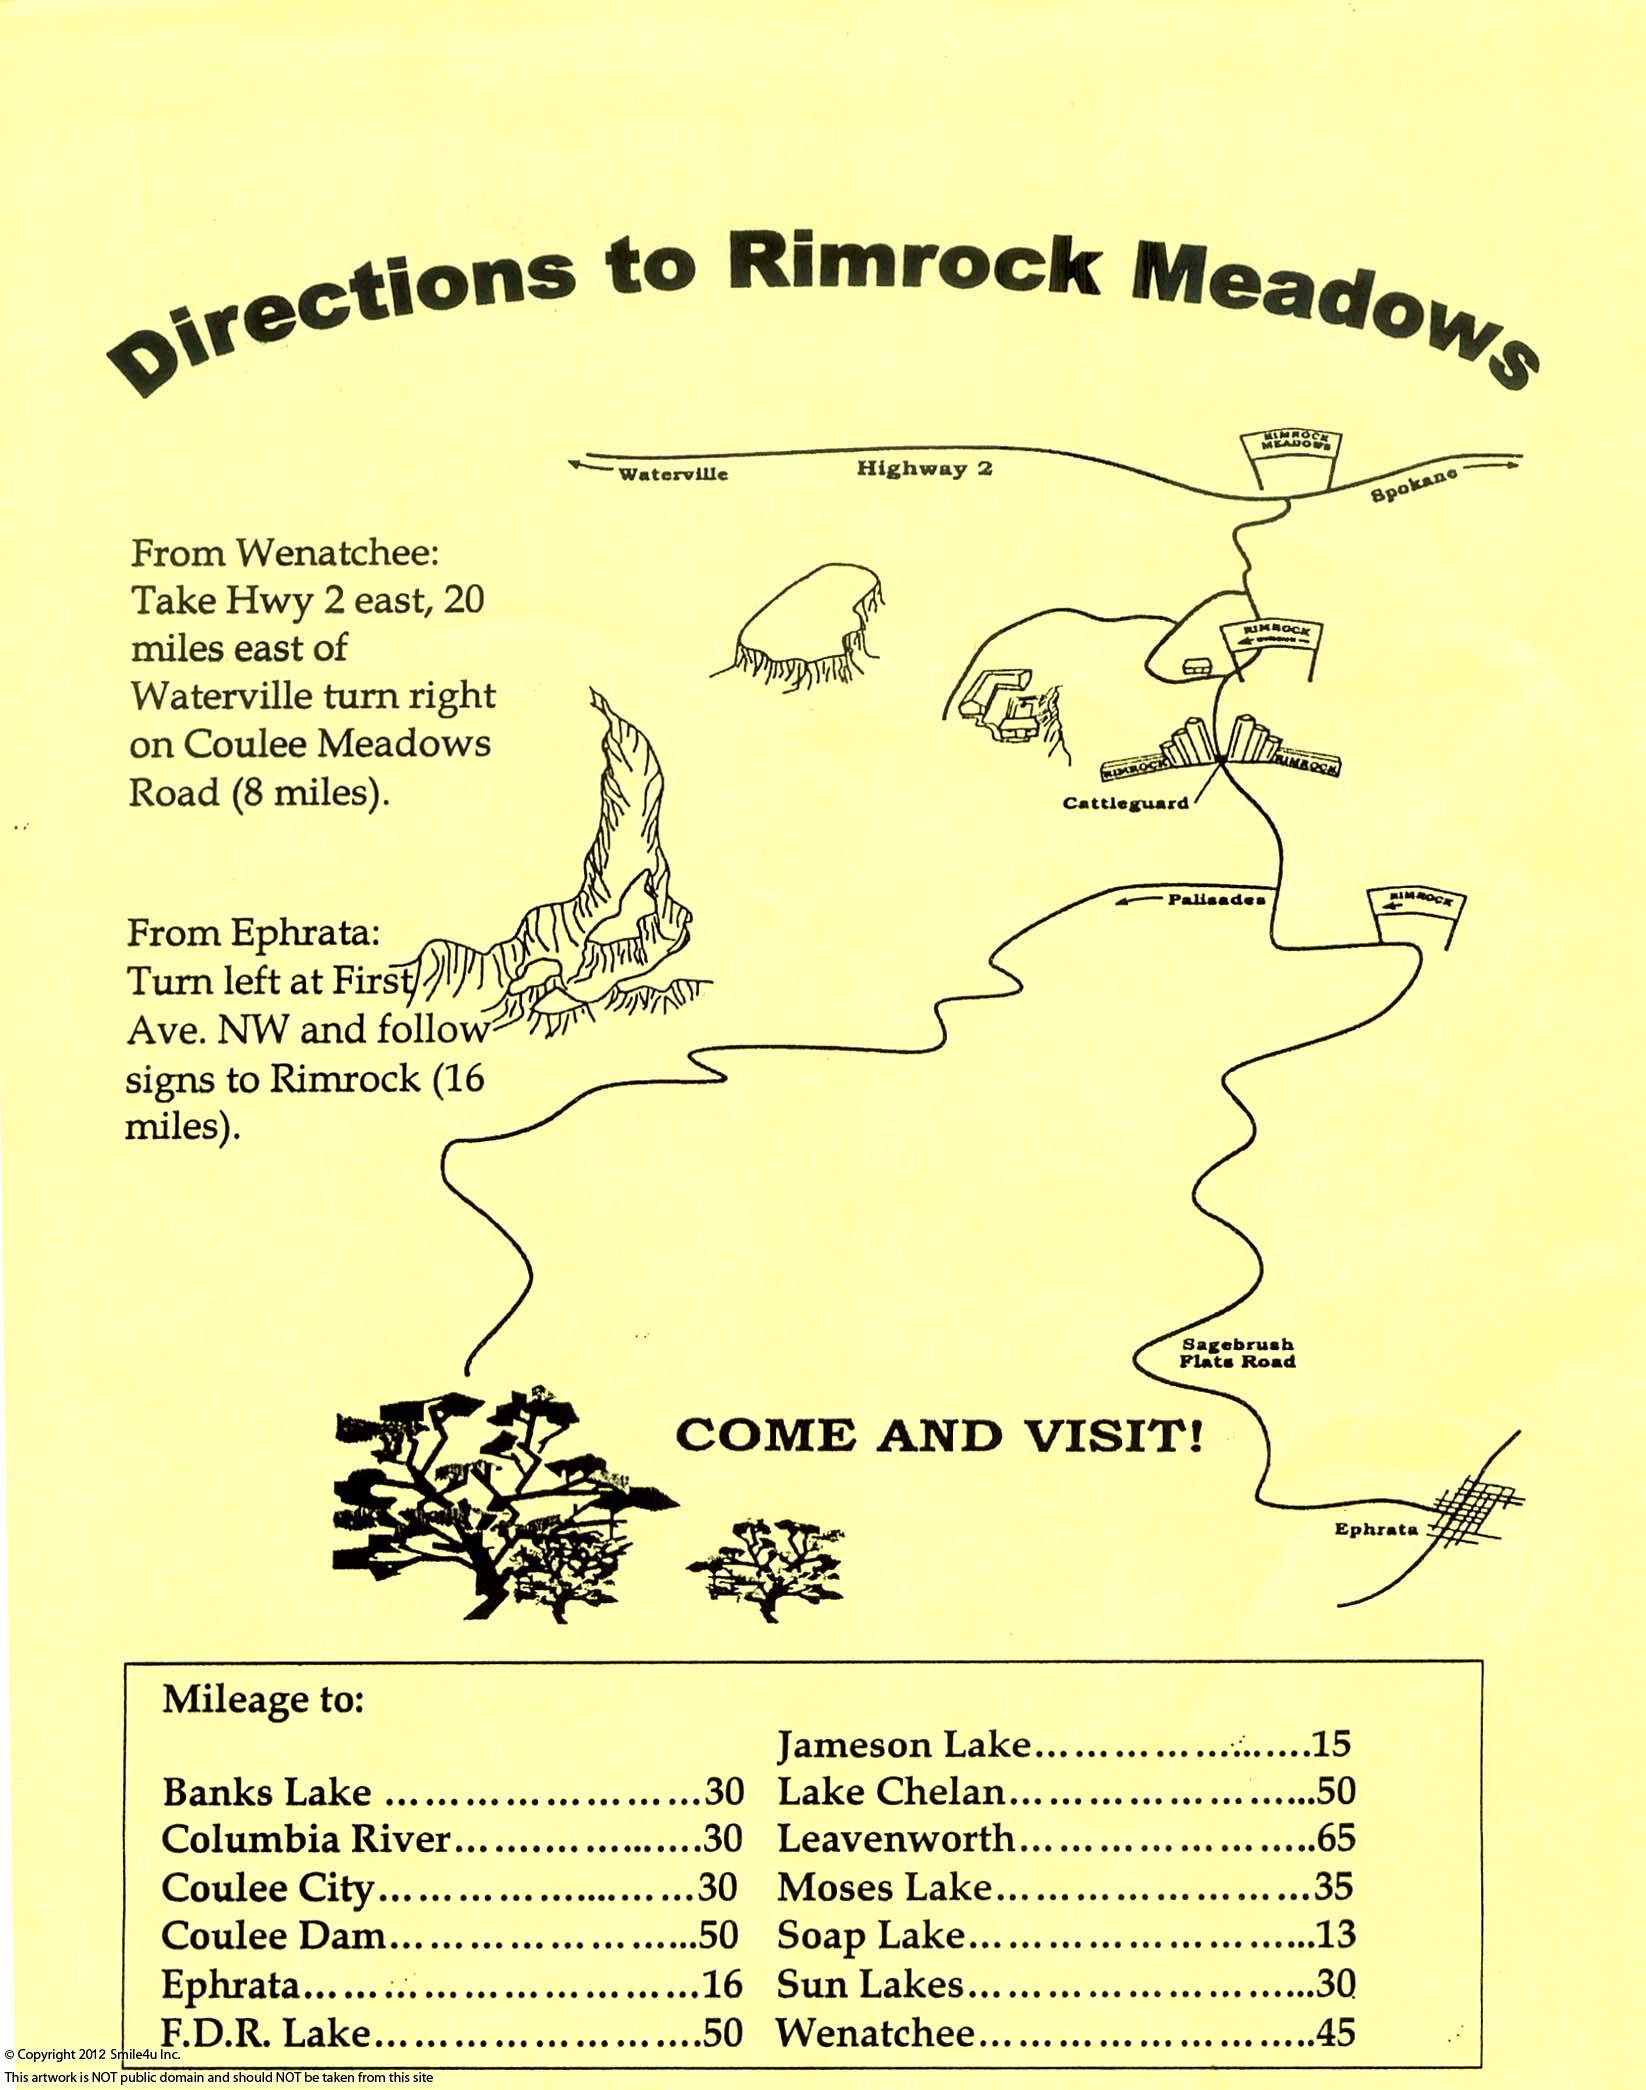 613885_watermarked_Directions to Rimrock Meadows from Ephrata.jpg